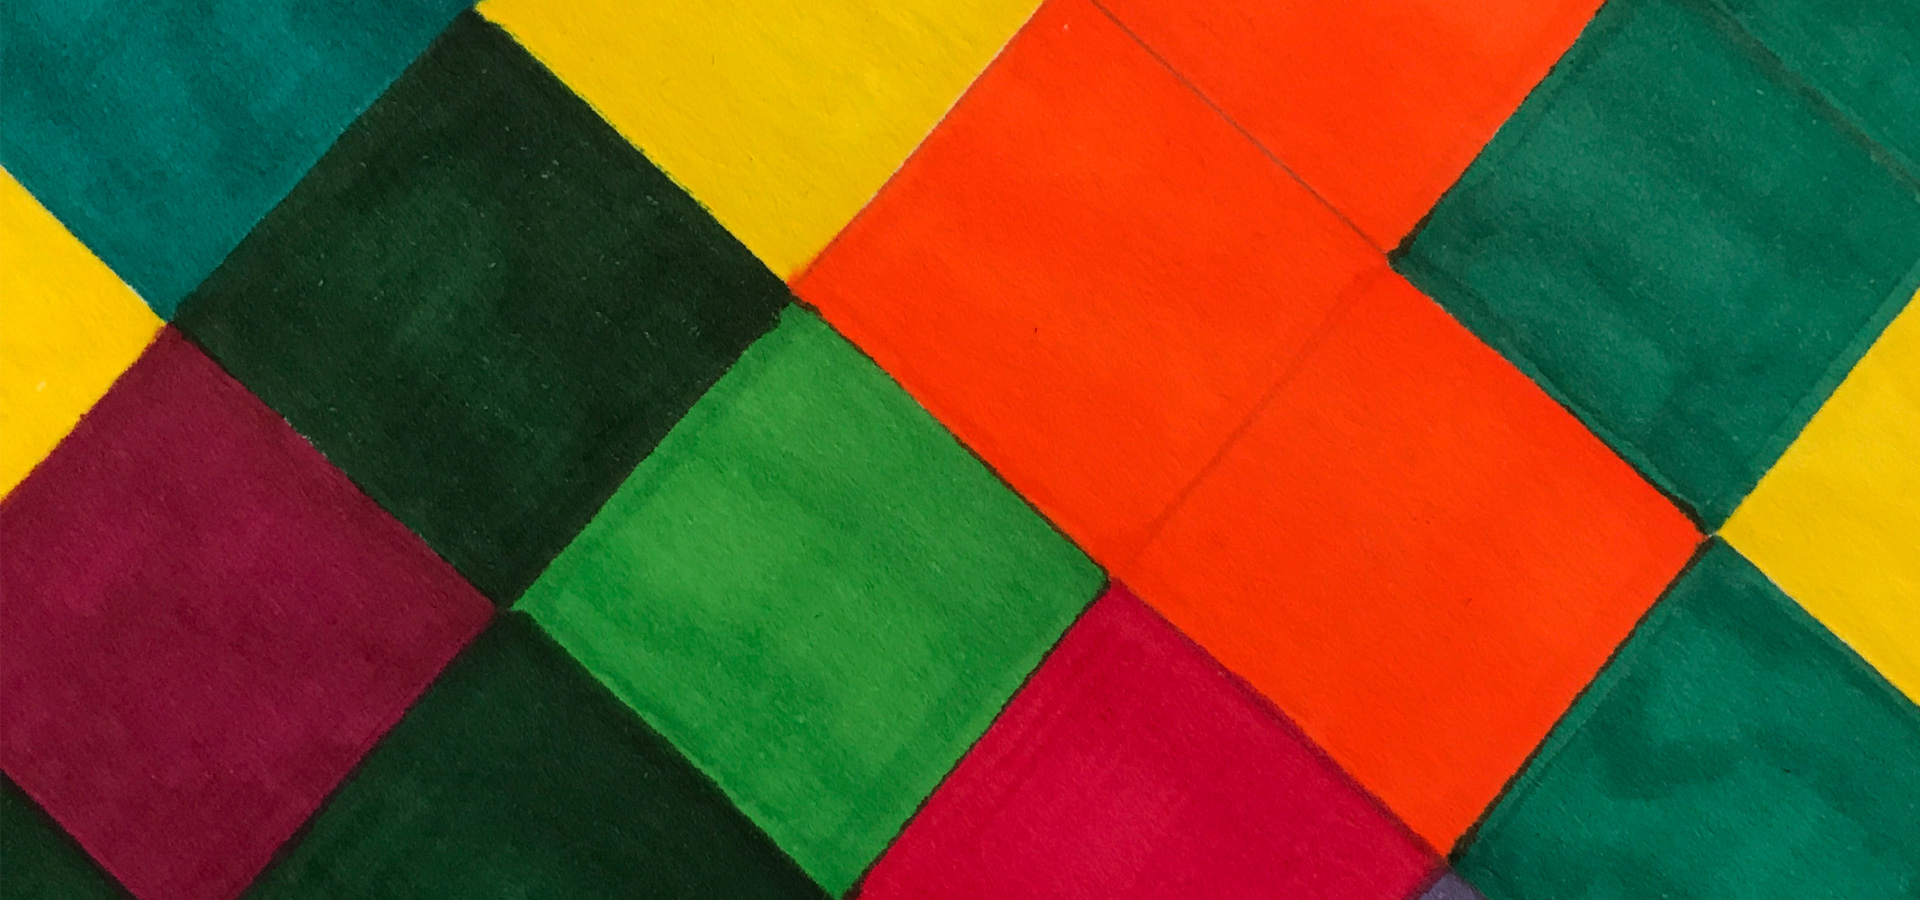 A patchwork of different colored squares